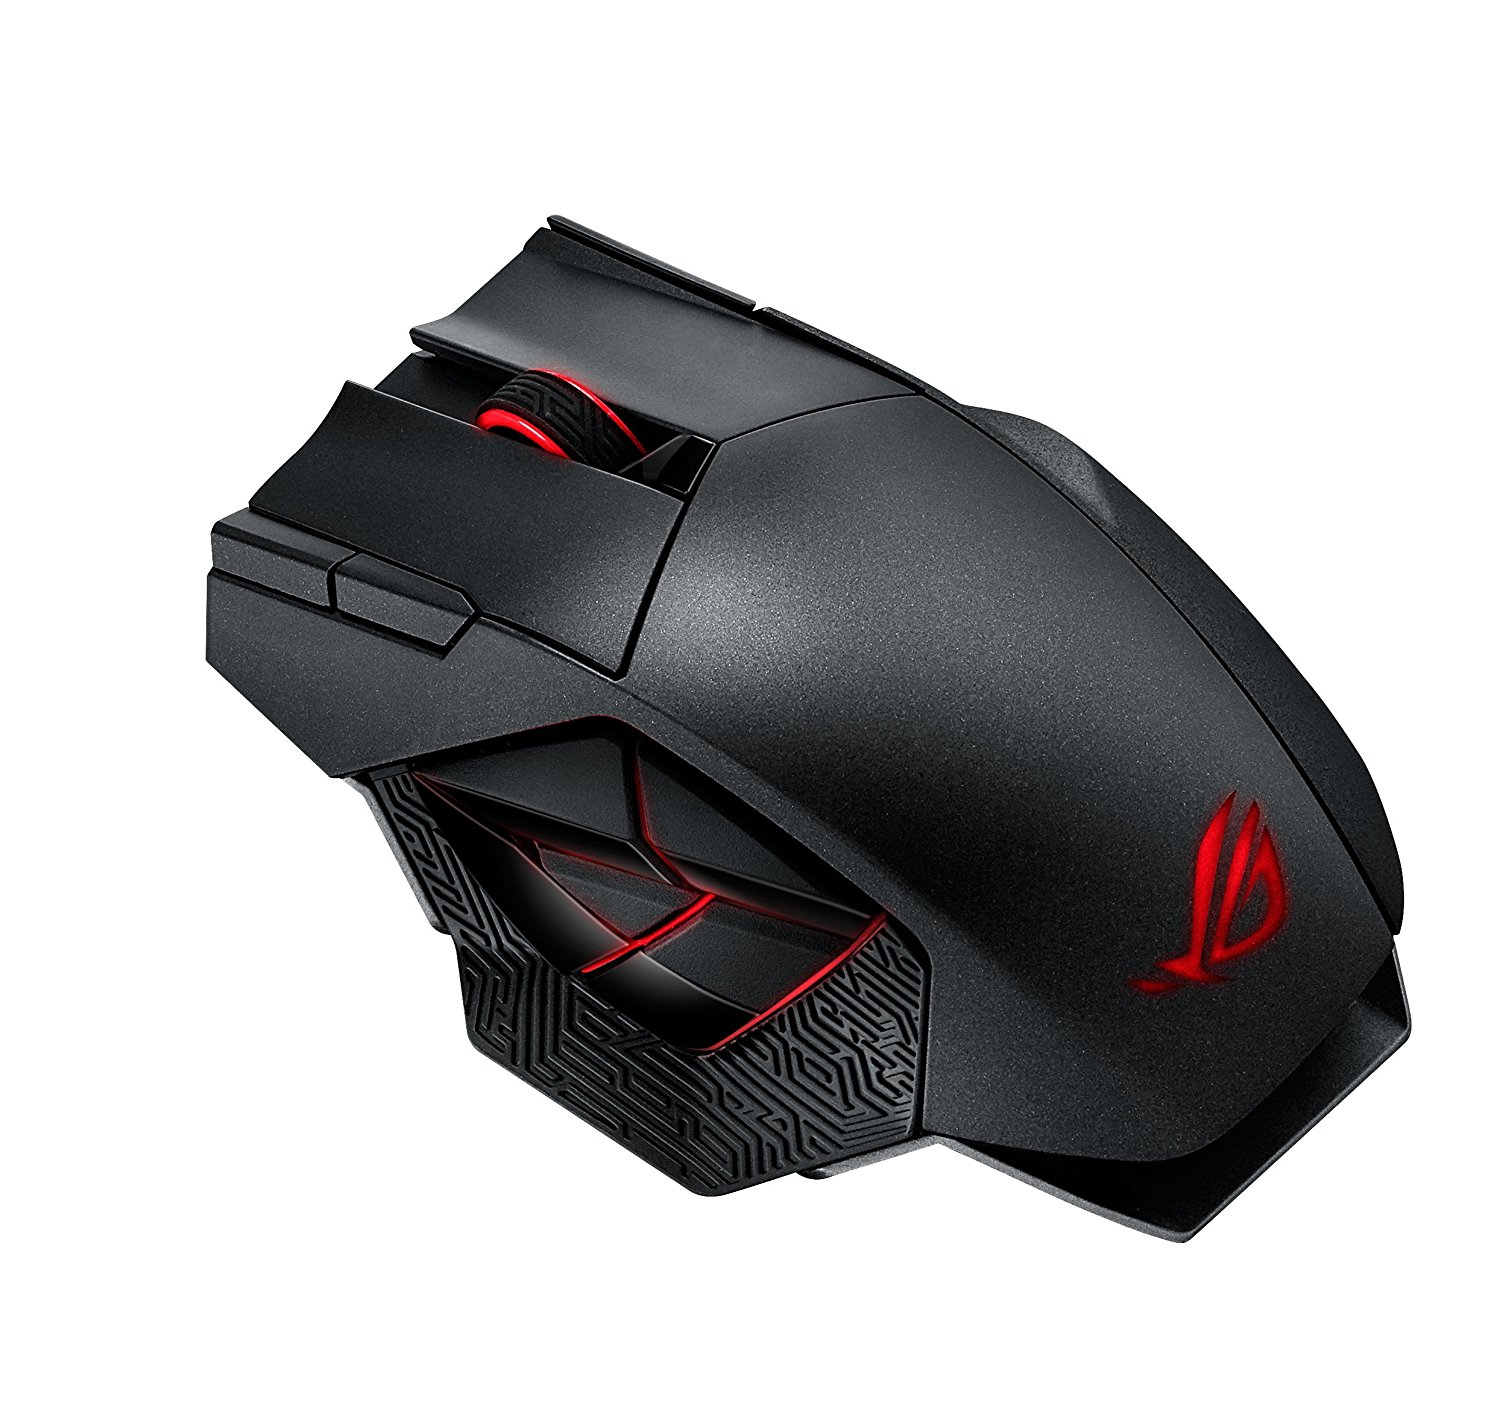 Asus ROG Spatha – Best MMO Gaming Mouse